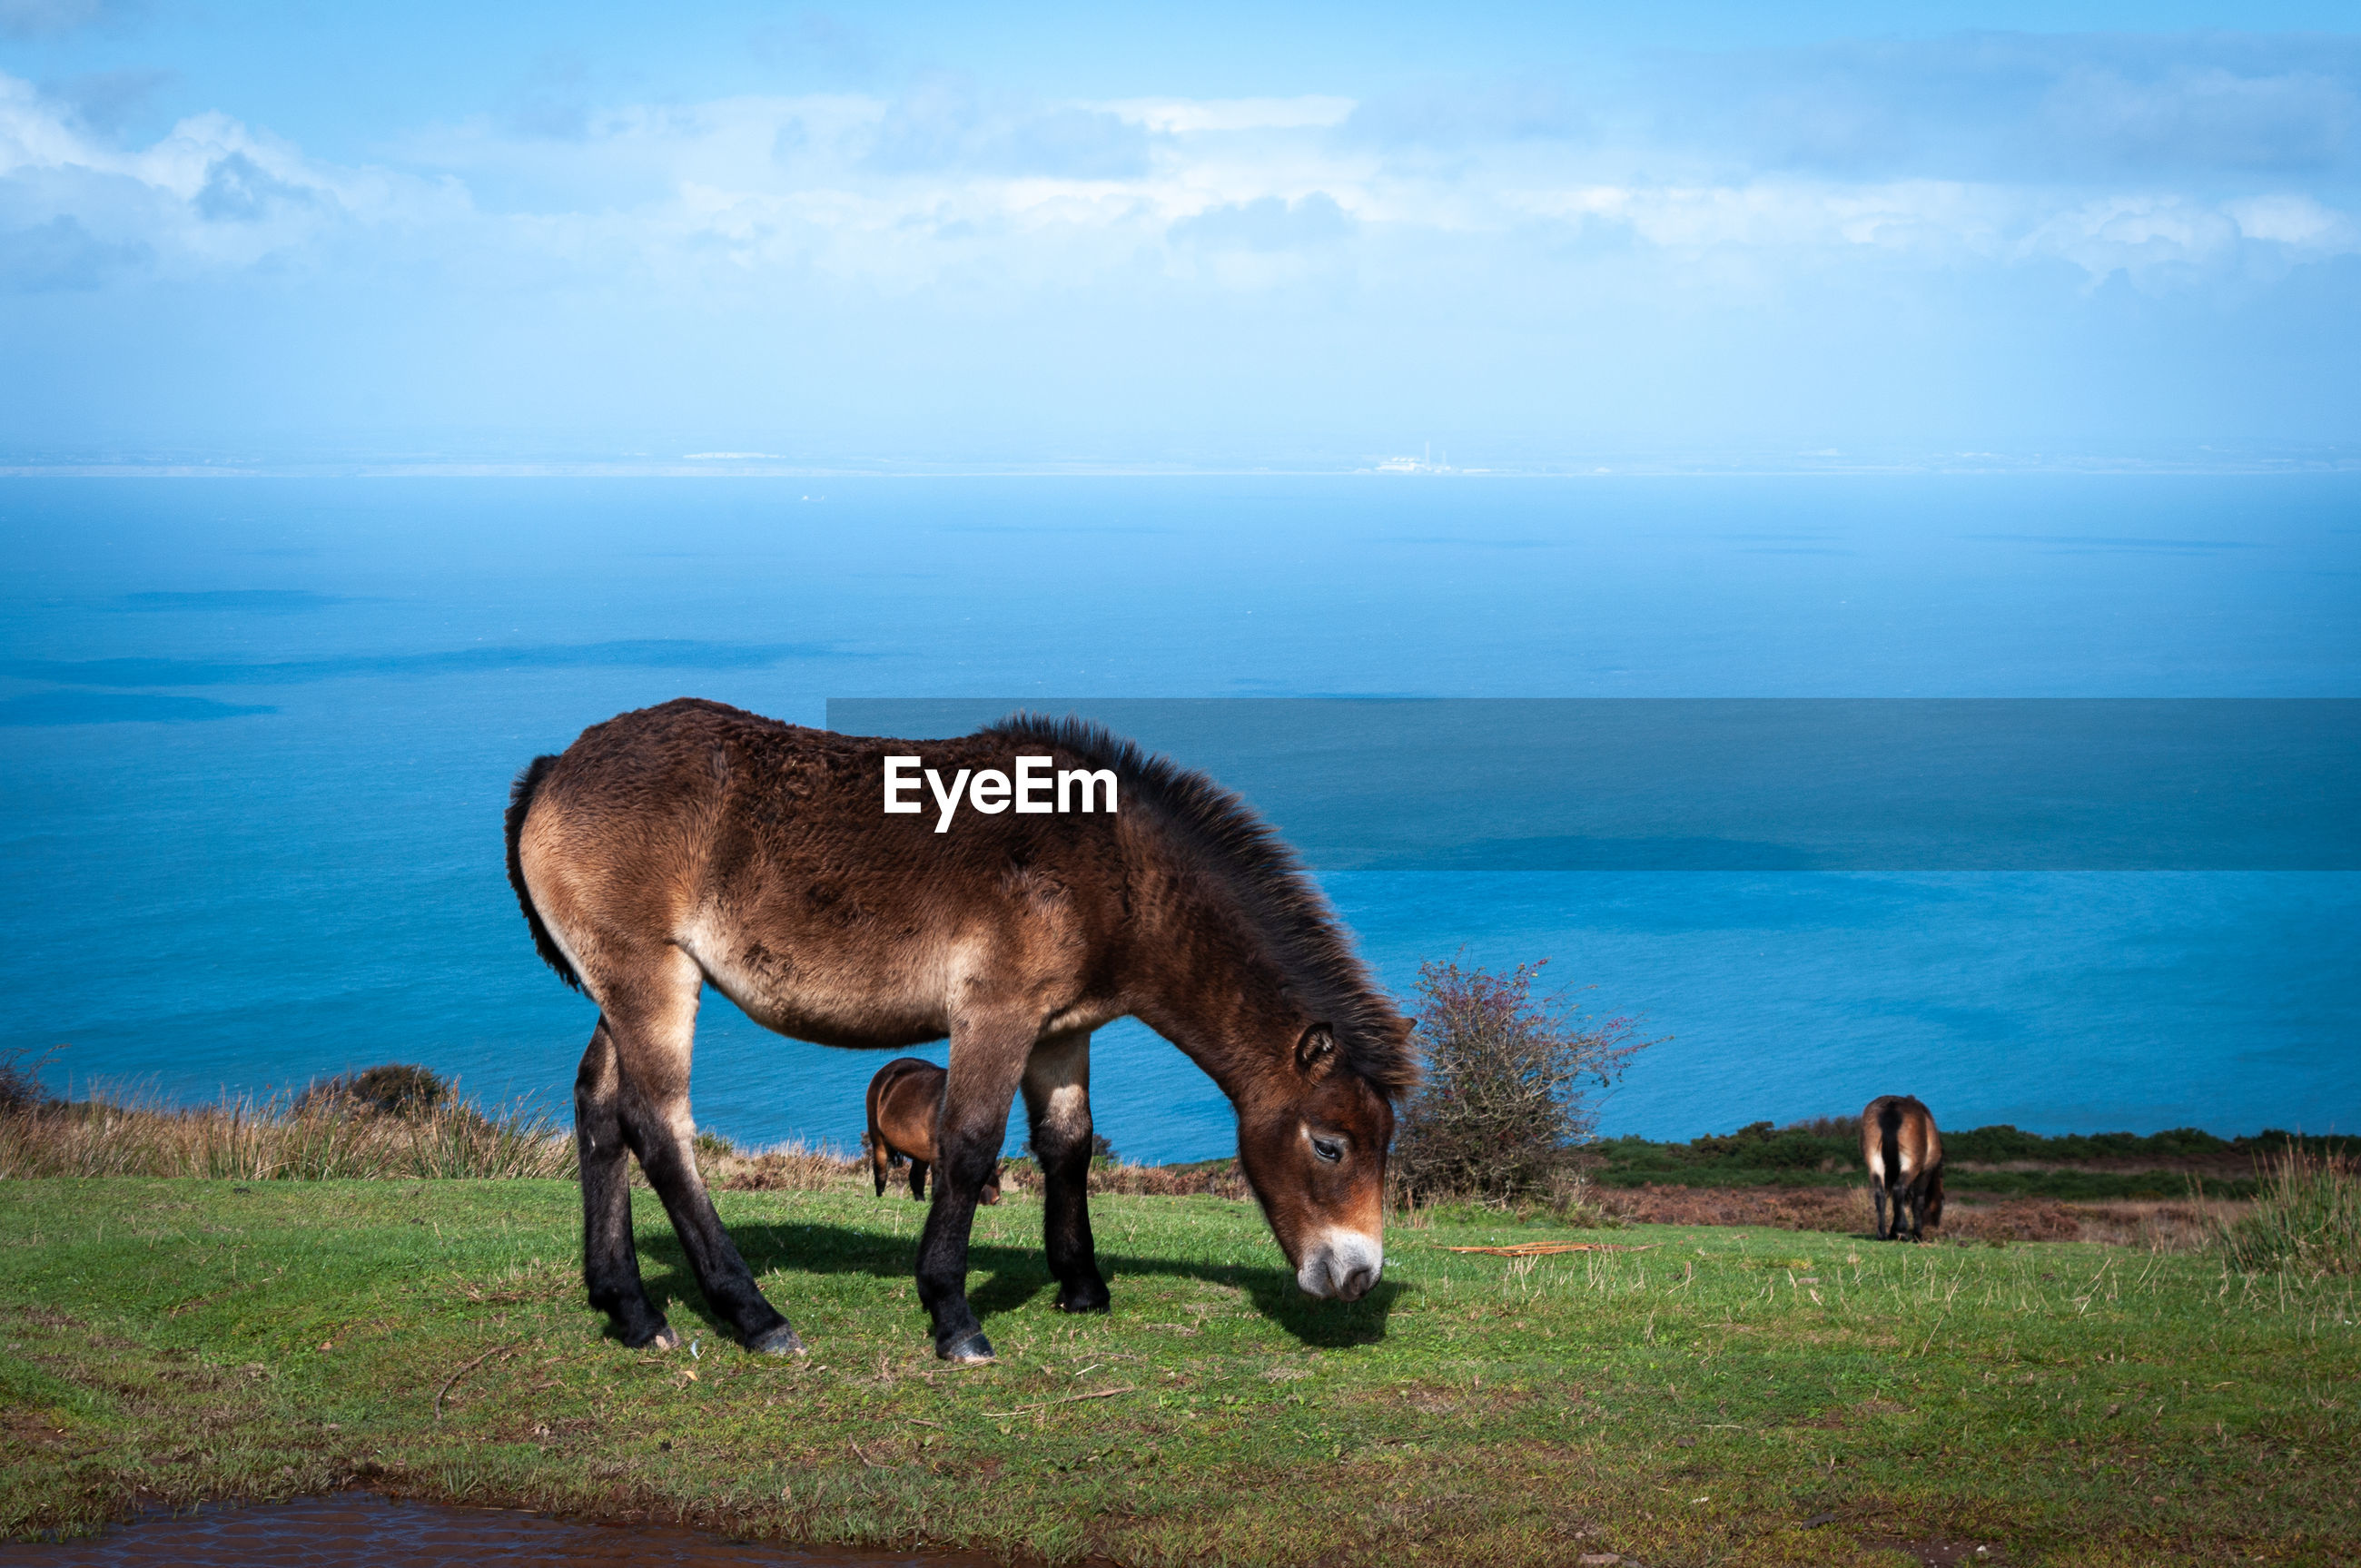 Exmoor ponies grazing and roaming free by the sea in somerset on exmoor national park